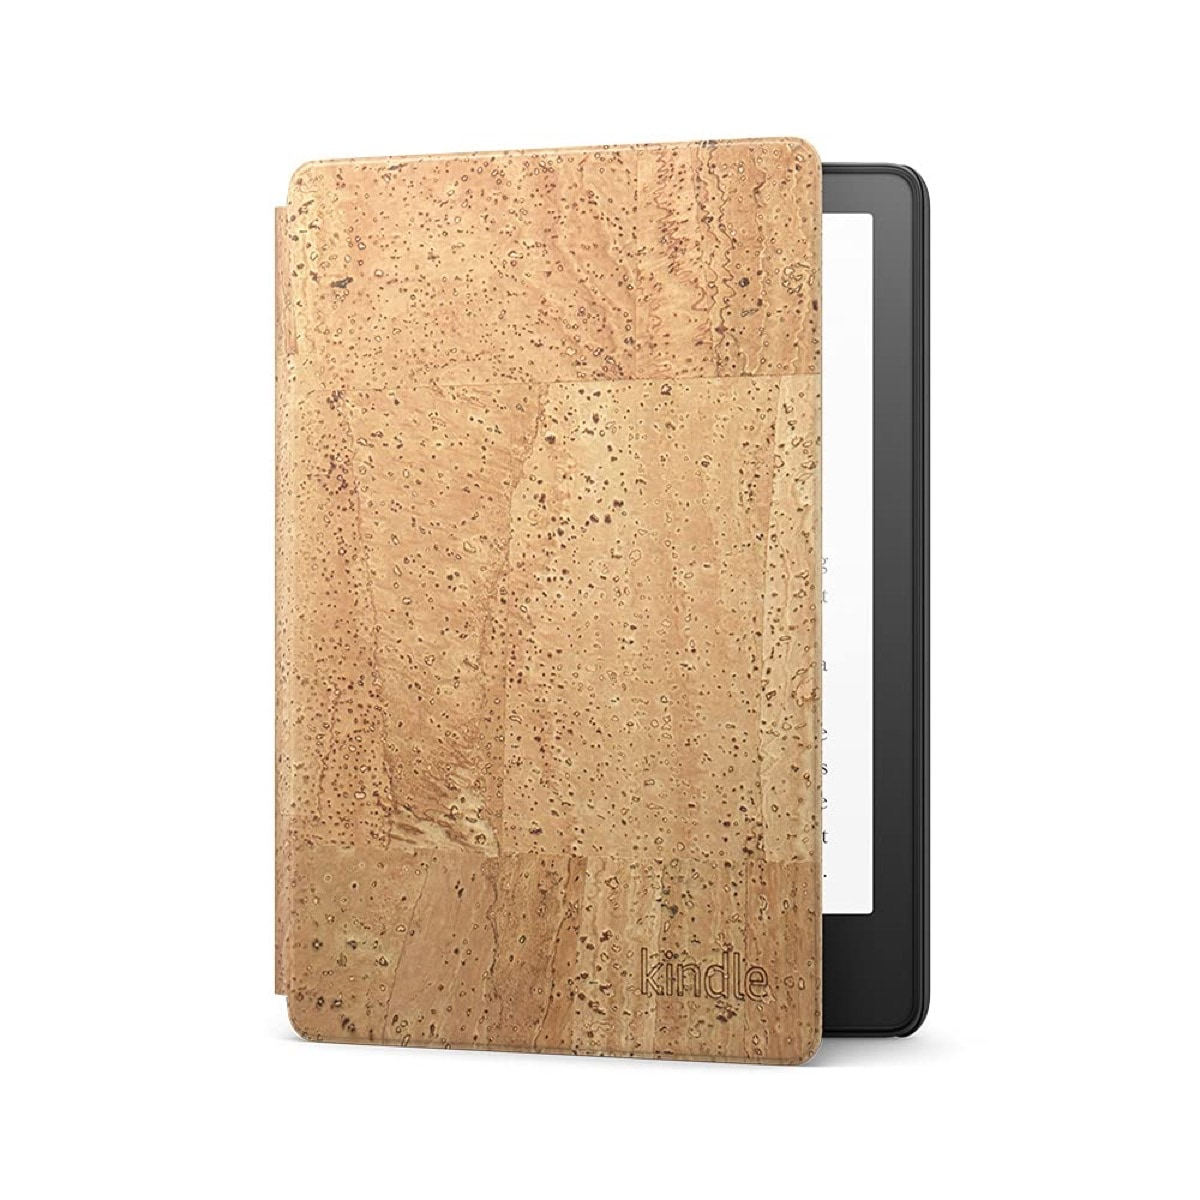 Official Amazon Kindle Paperwhite 5 2021 cork cover